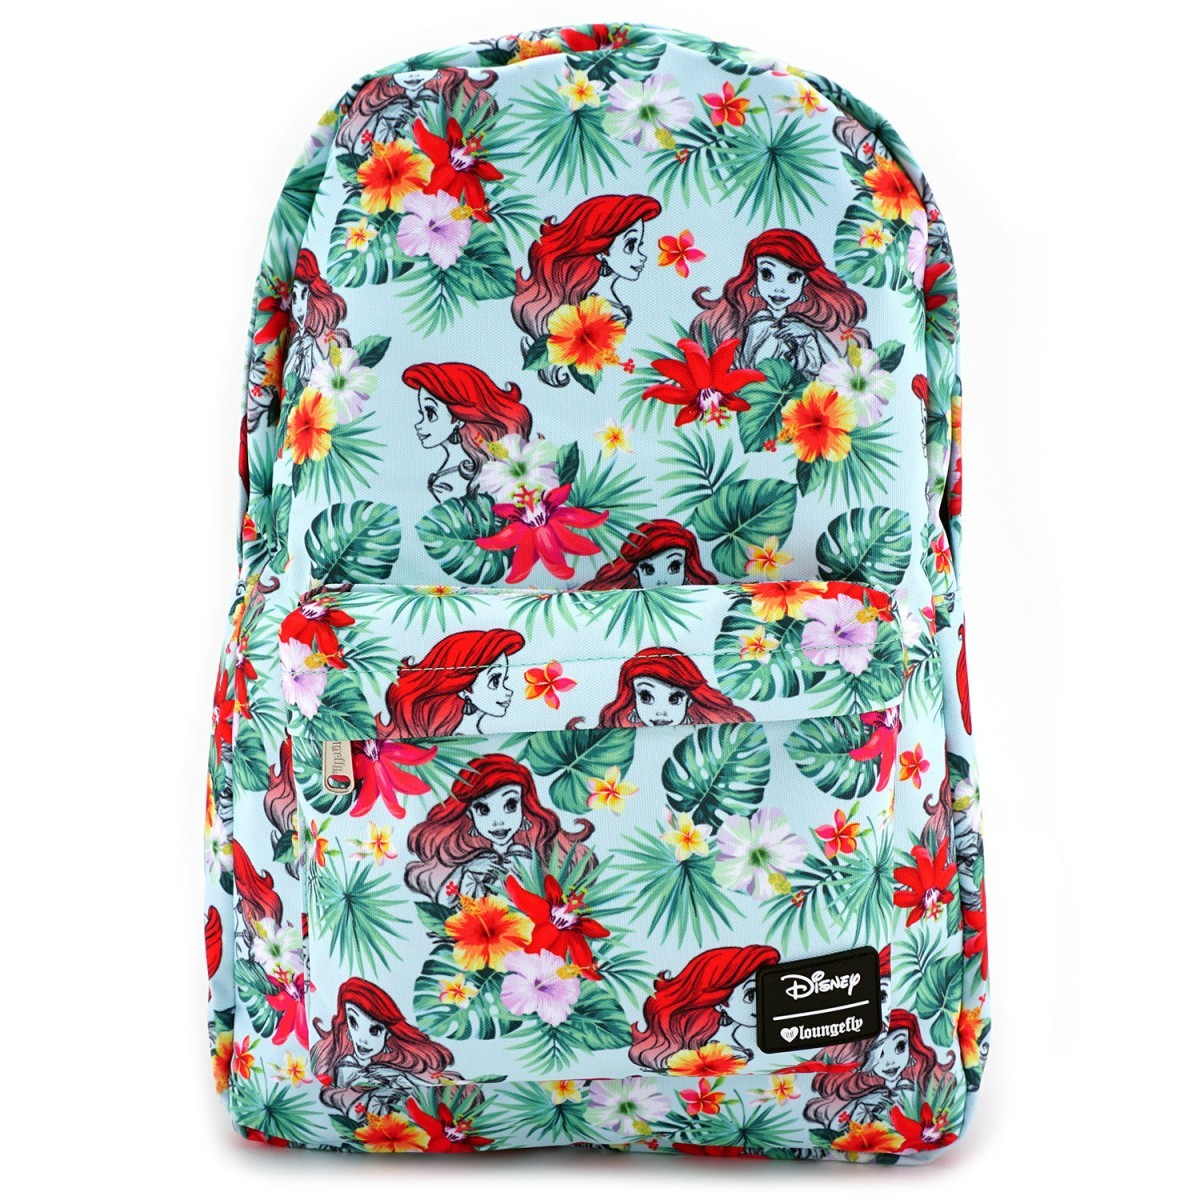 Loungefly Disney Ariel Sea AOP Backpack image